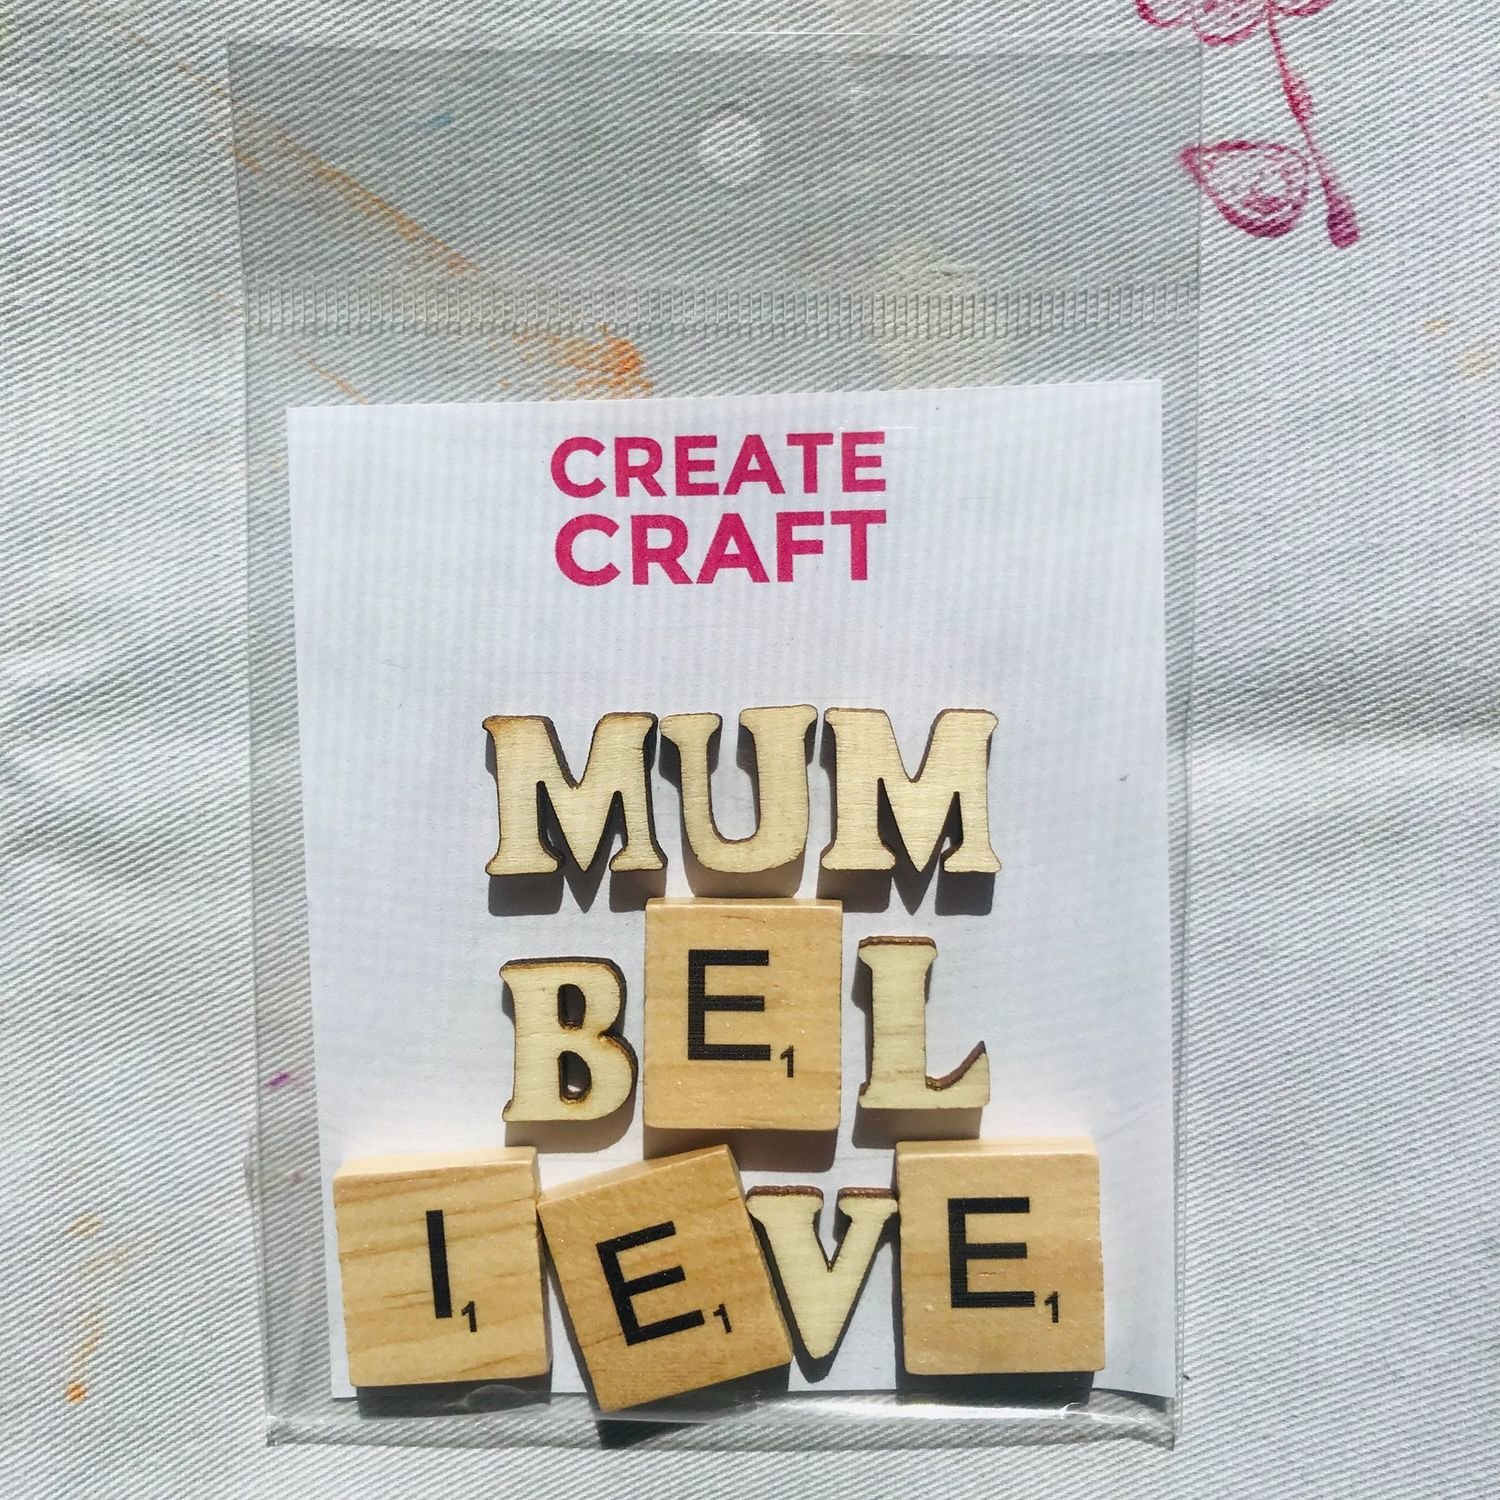 Create Craft Bag 070